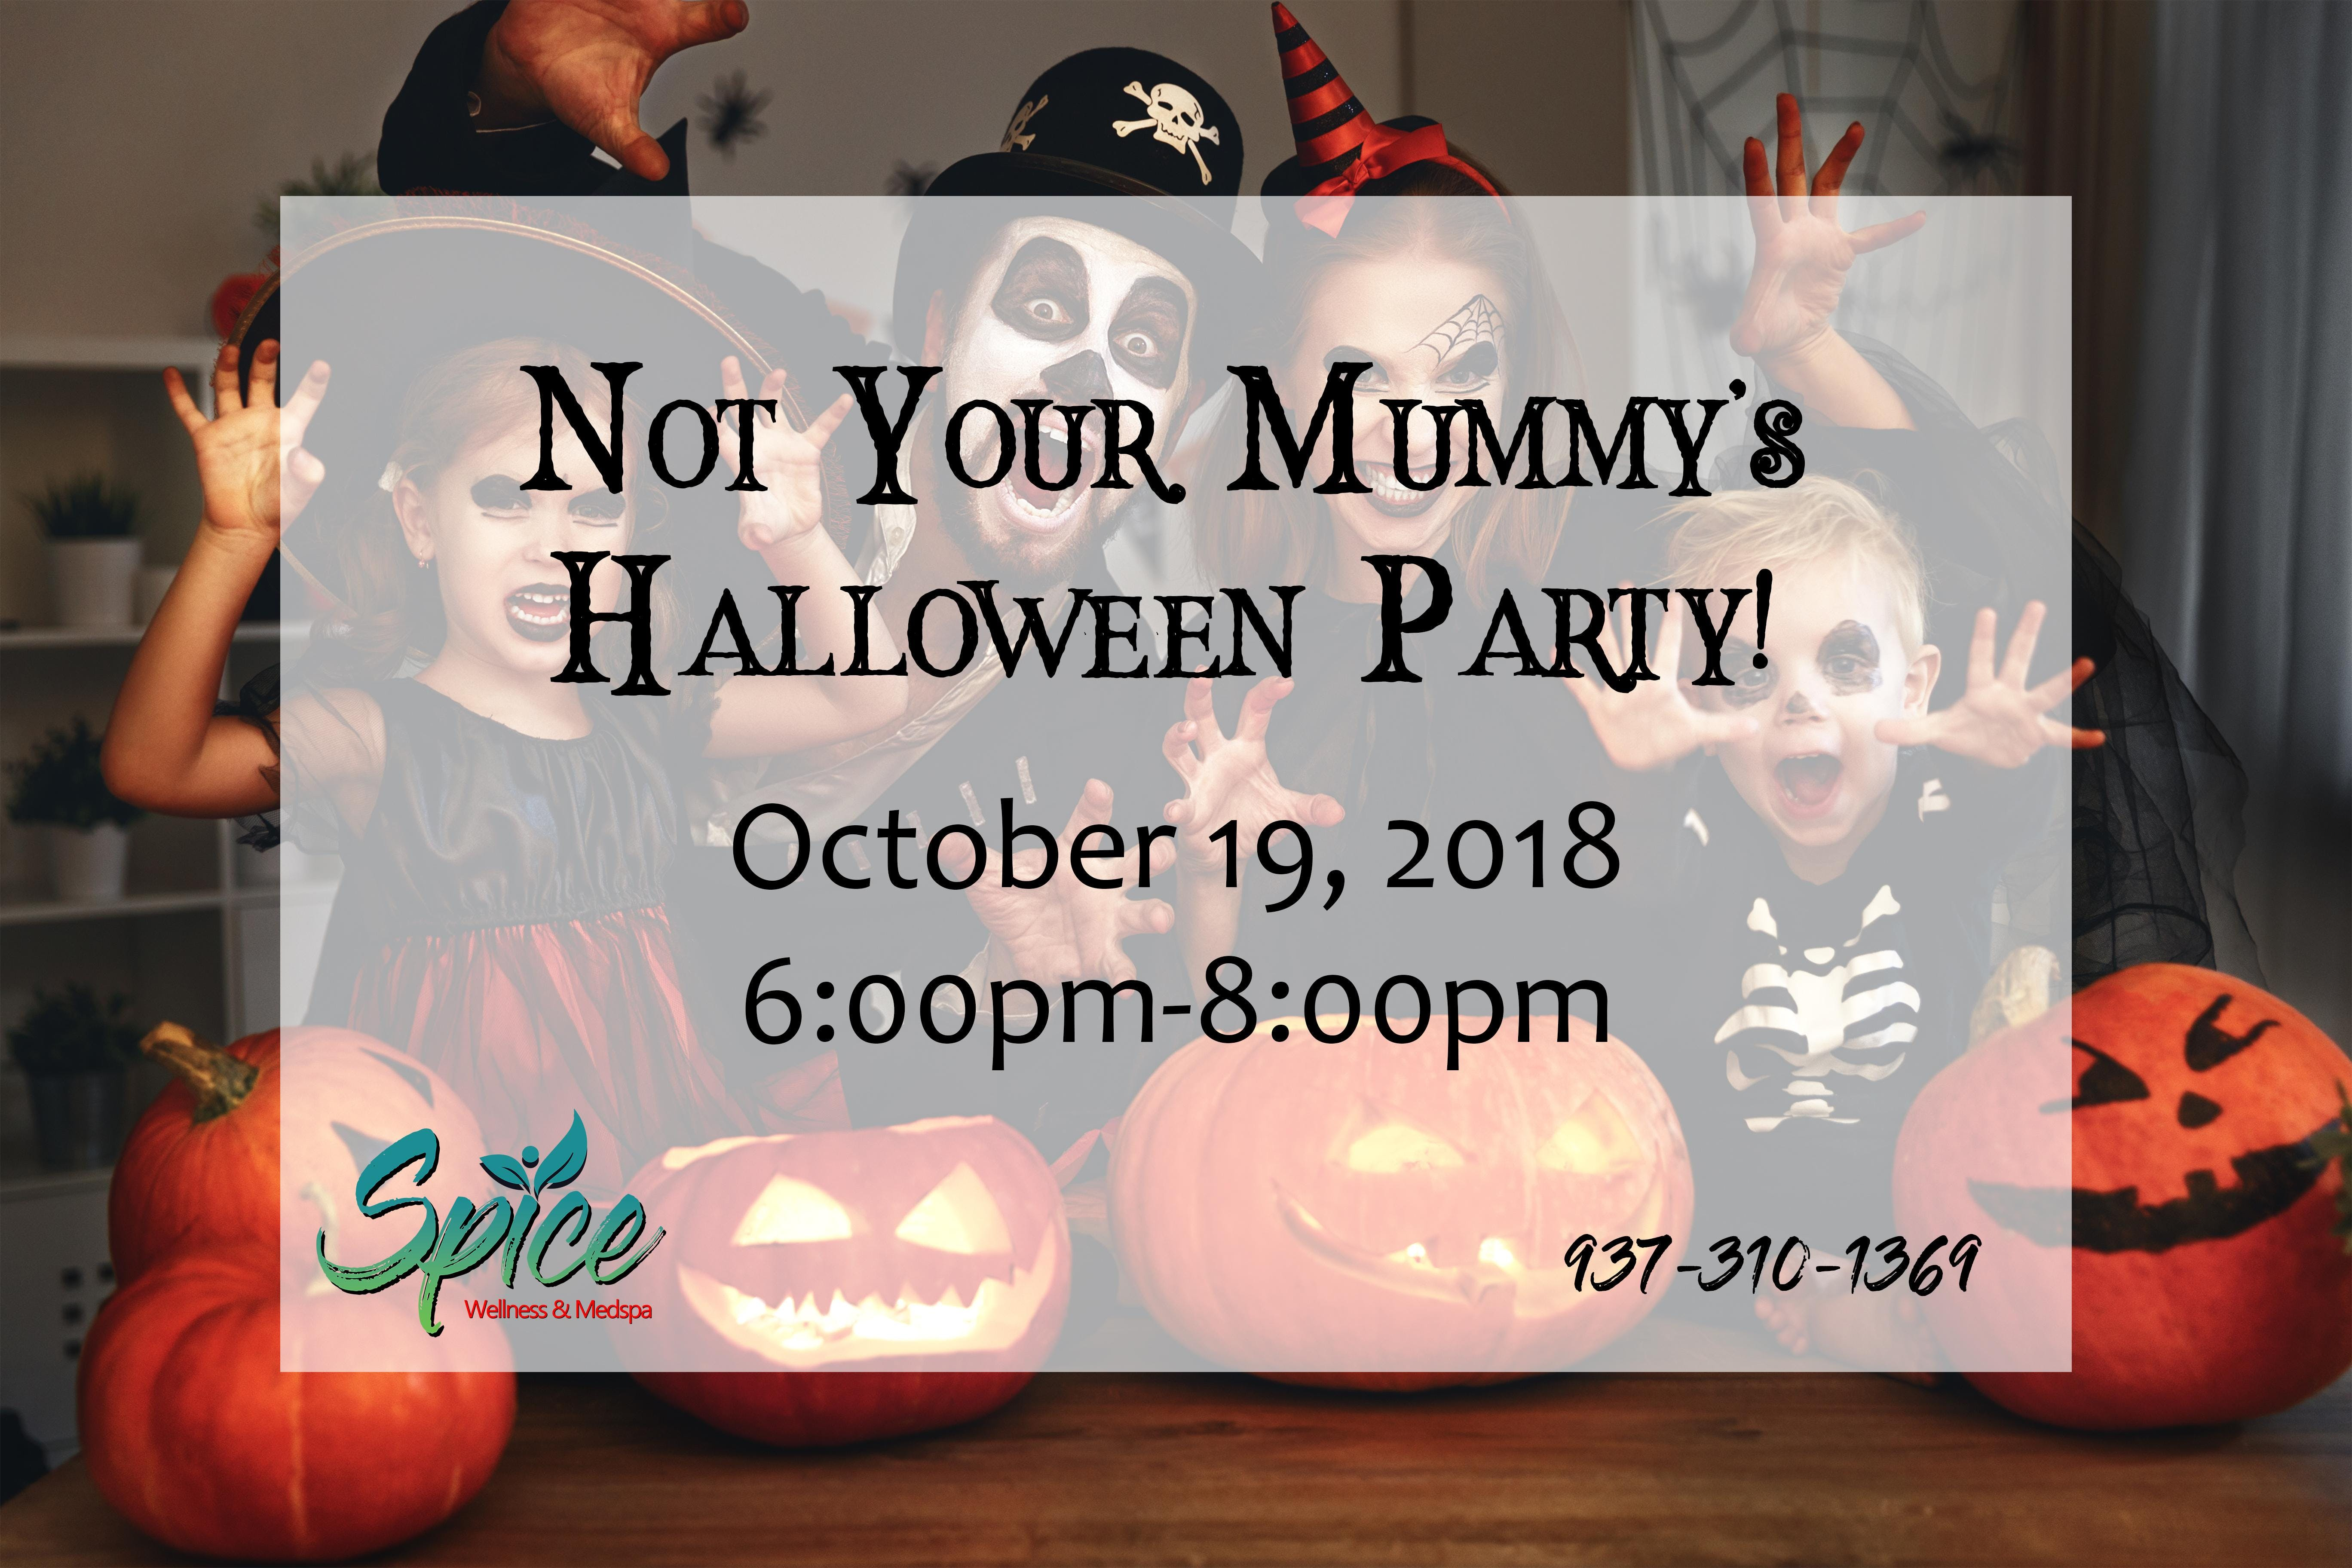 Not Your Mummy's Halloween Party!